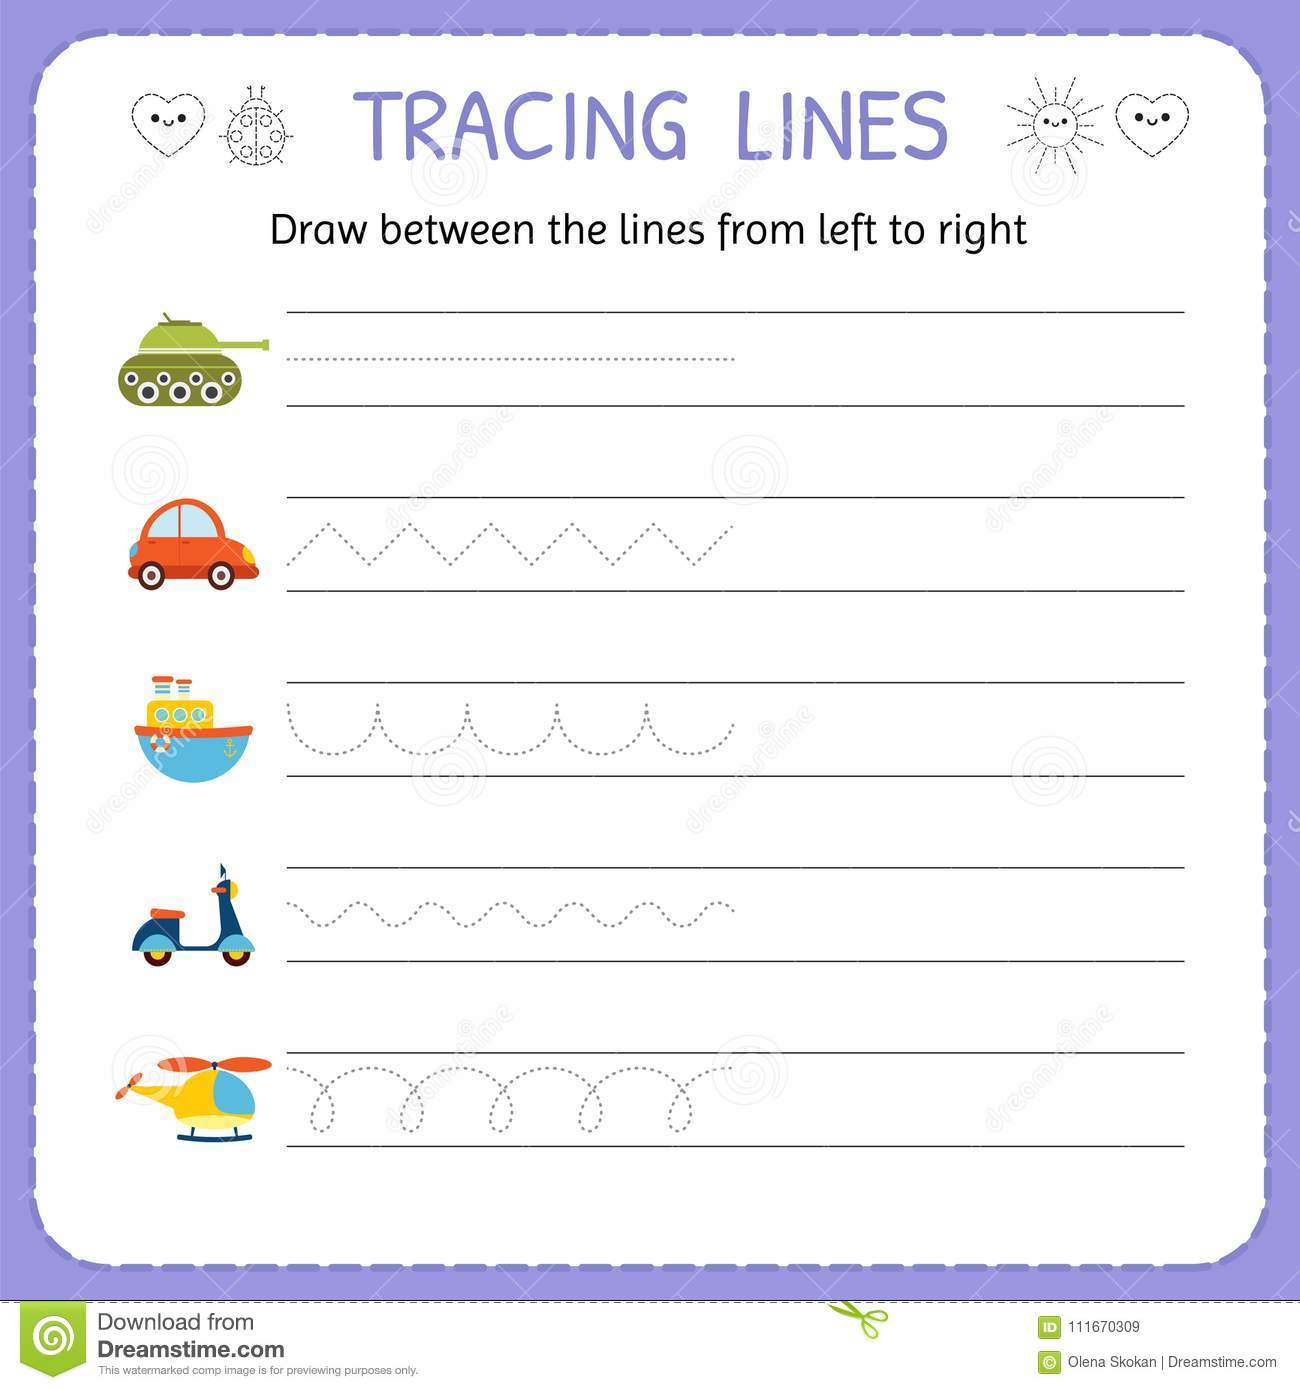 Draw Between The Lines From Left To Right Preschool Kindergarten Worksheet For Practicing